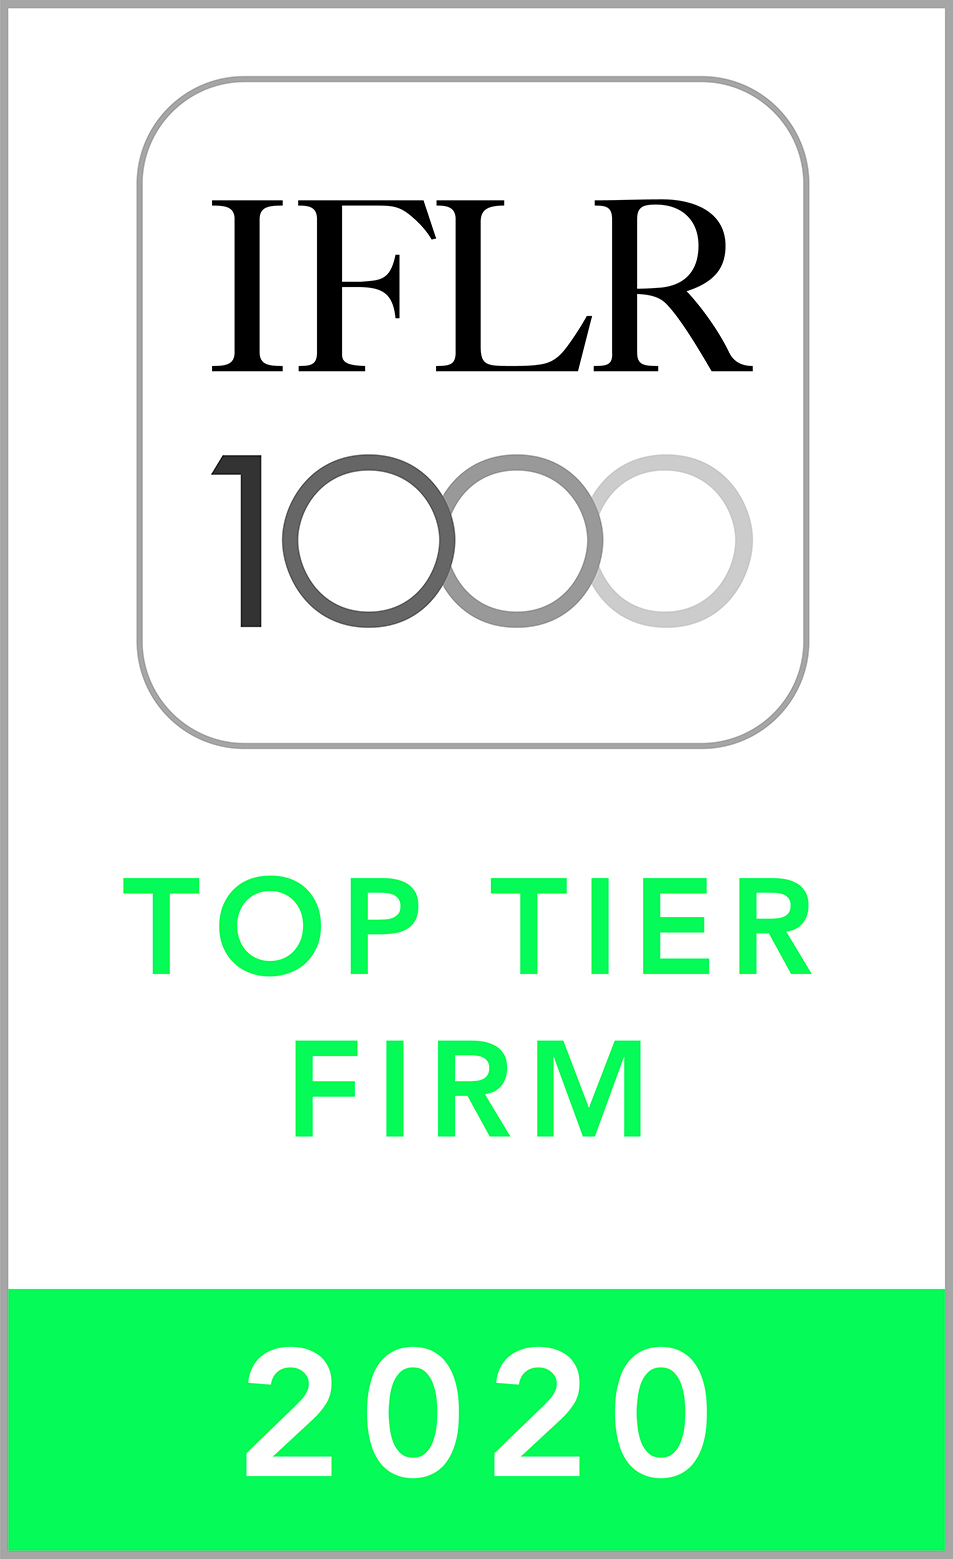 IFLR 1000 FINANCIAL AND CORPORATE TOP TIER FIRM 2020